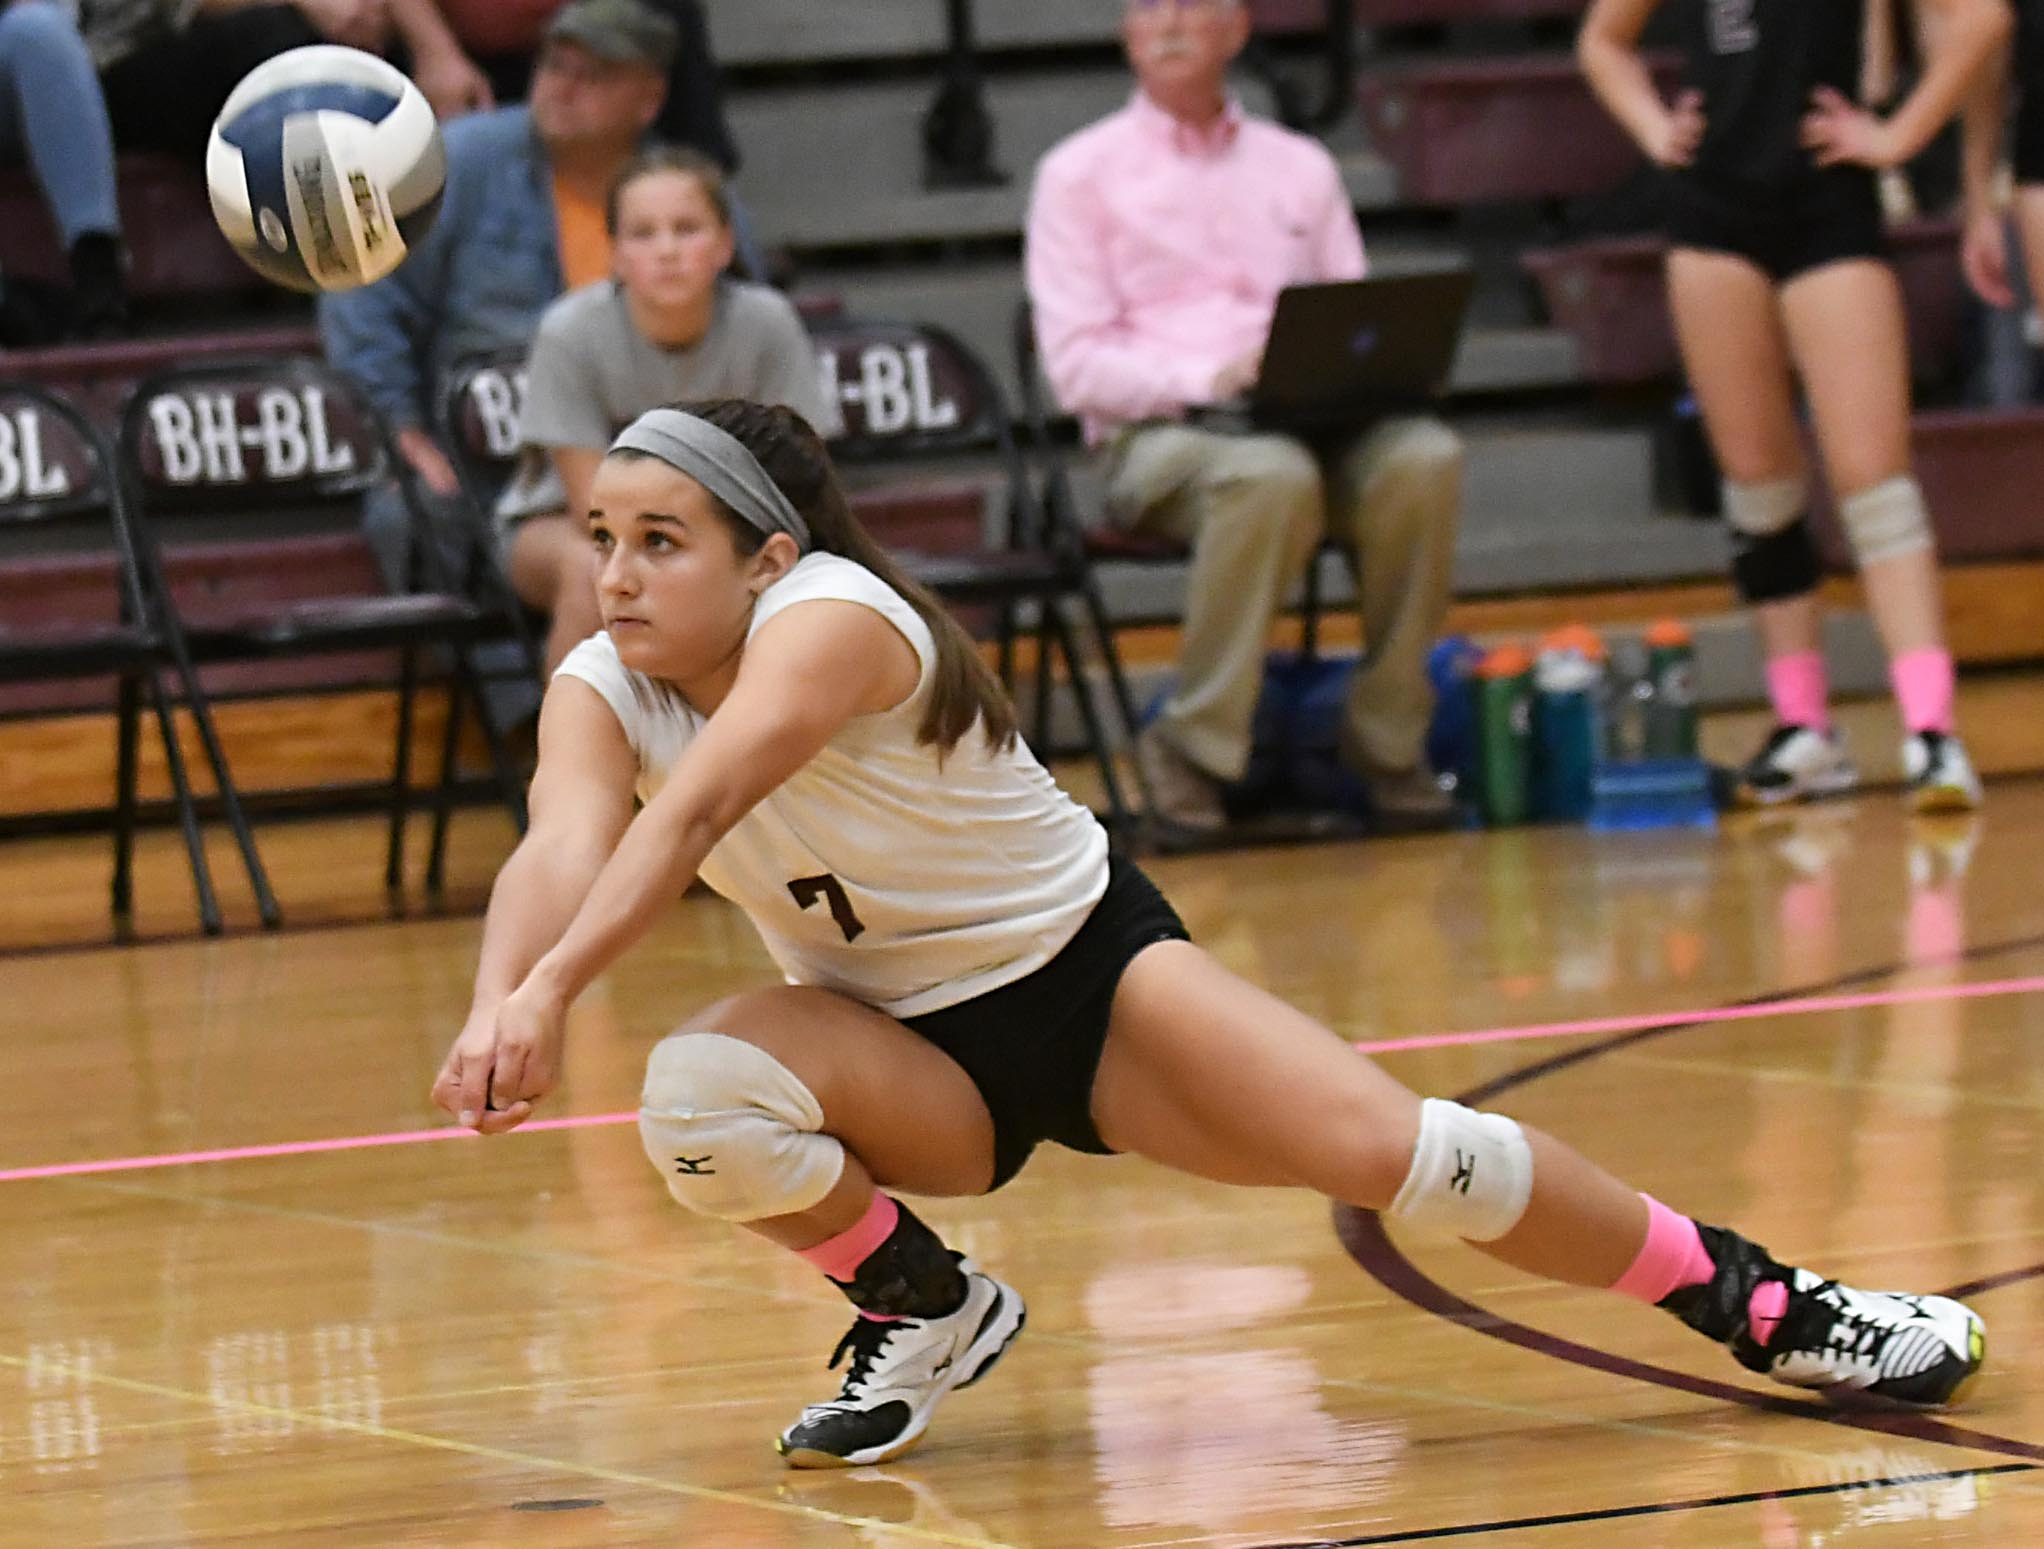 Shenendehowa tops Burnt Hills in girls\' volleyball - Times Union